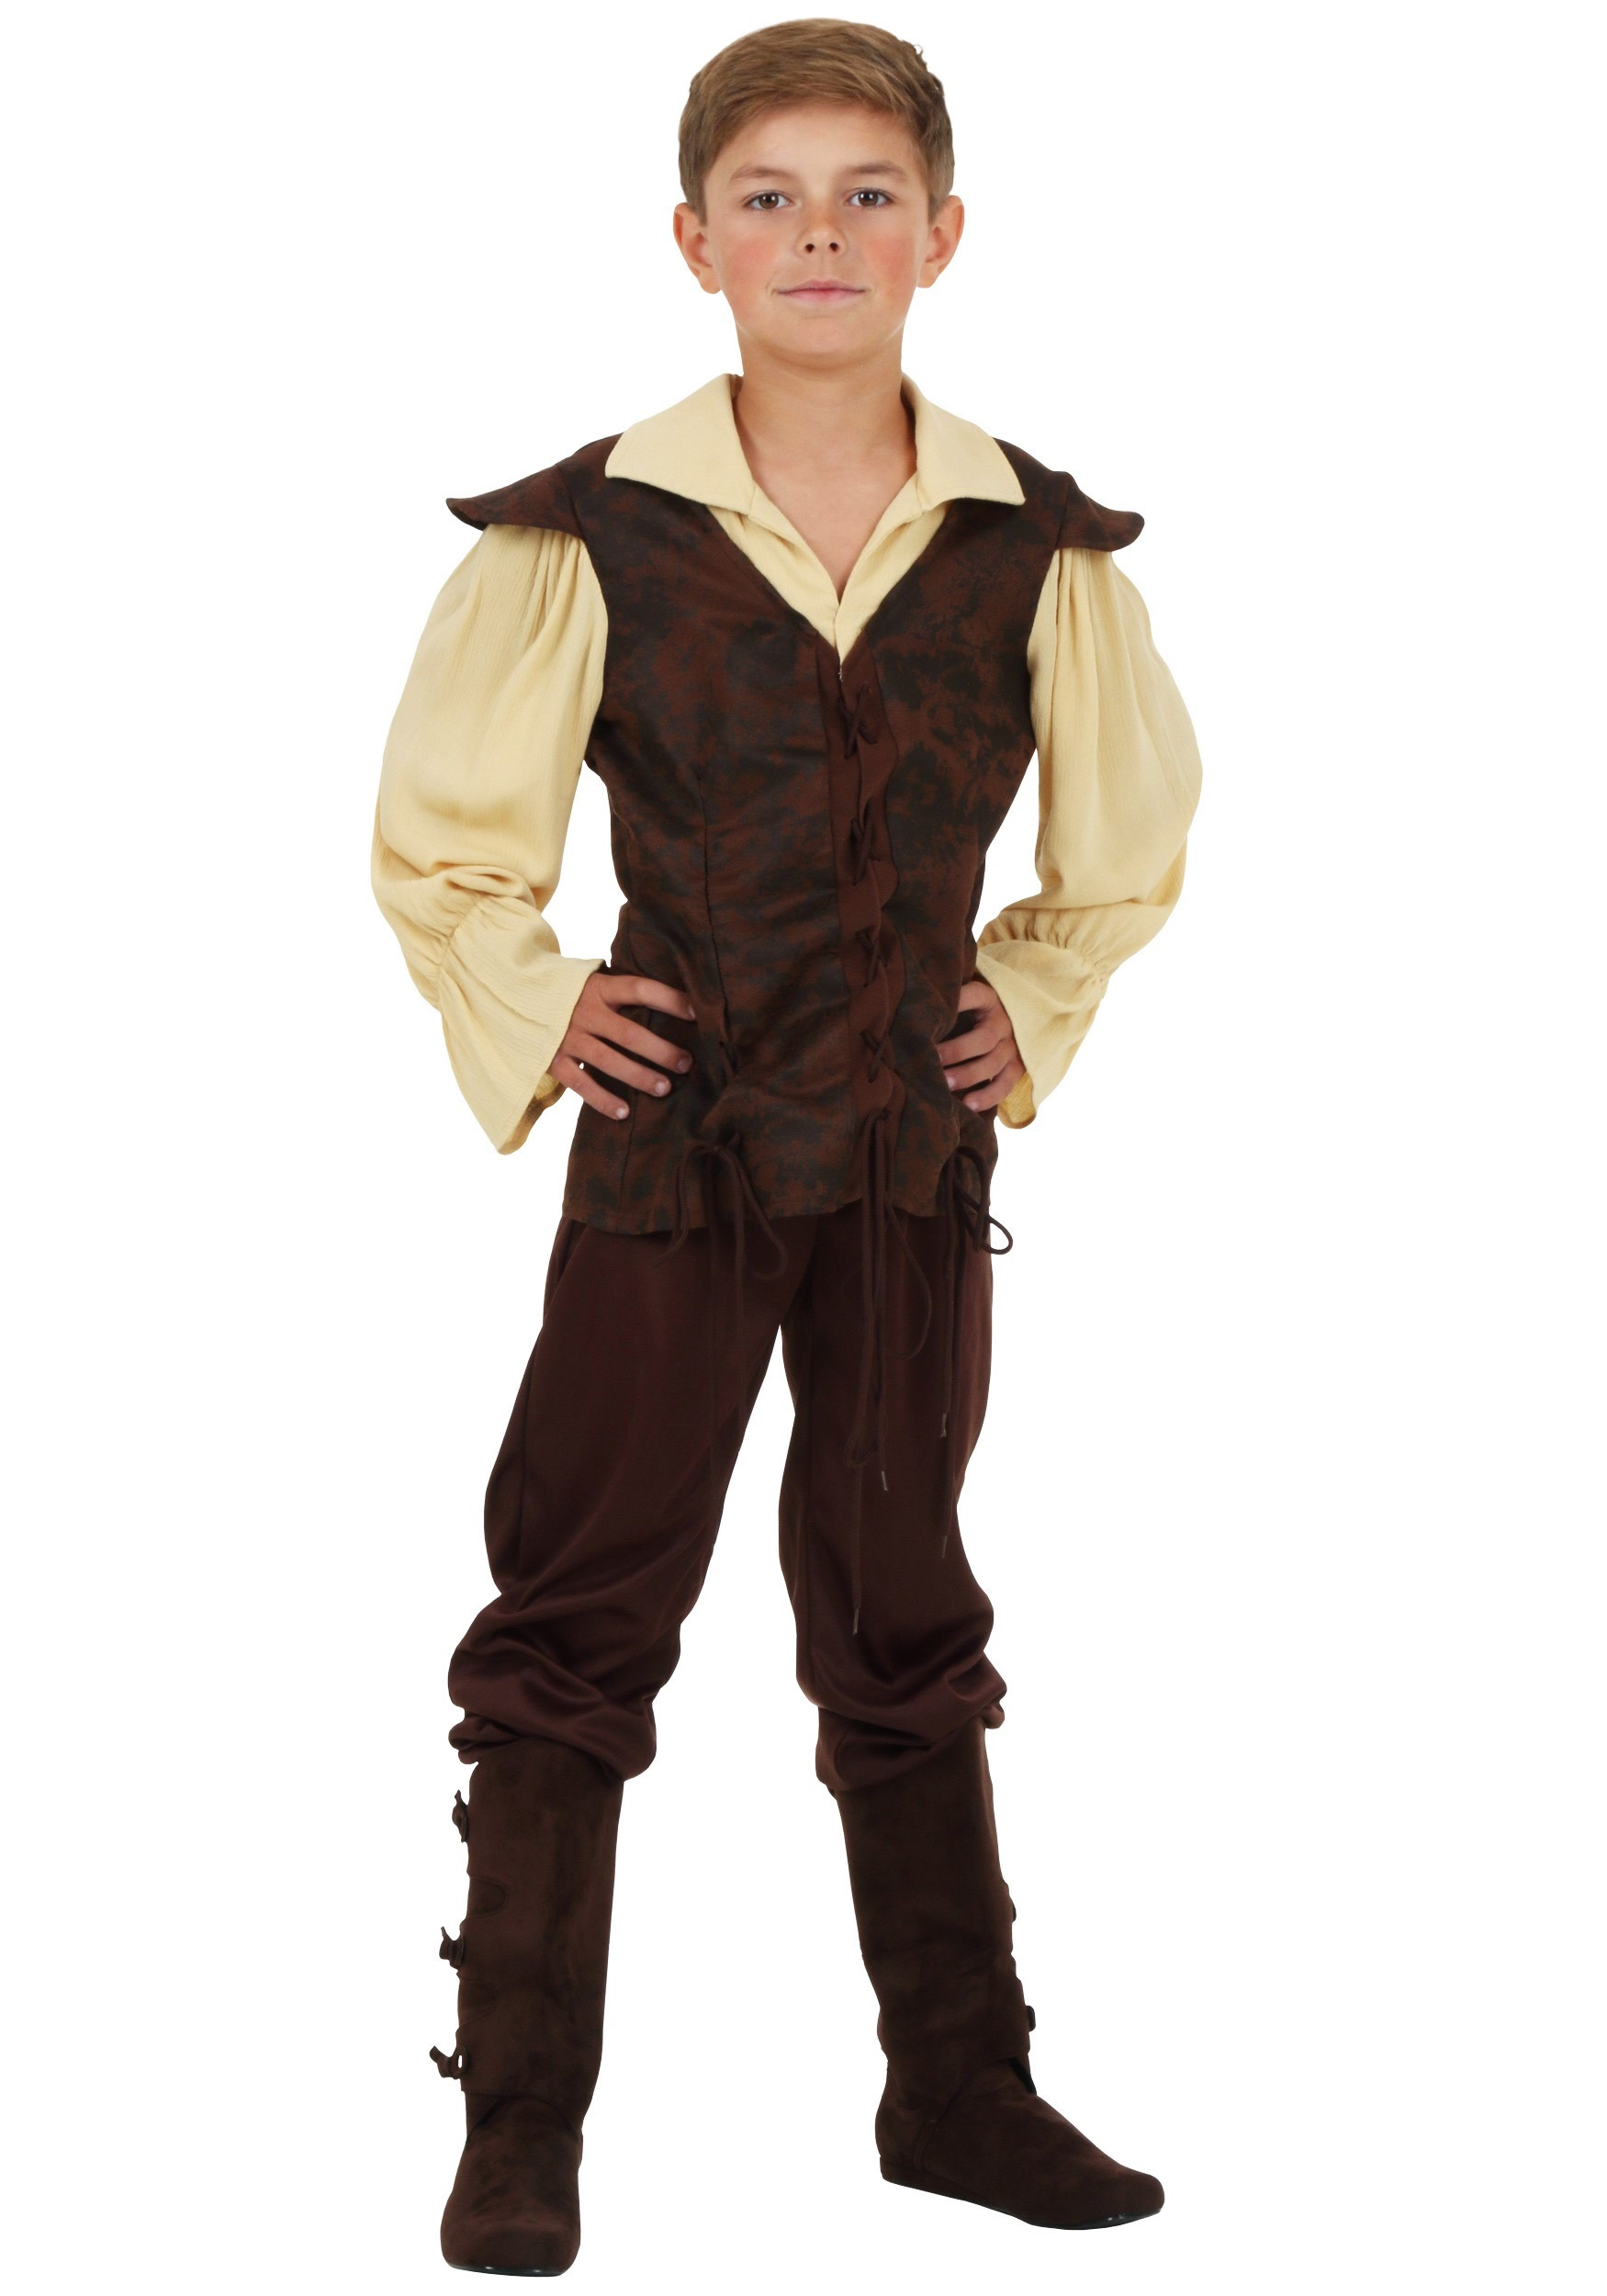 squires men Our men's squire costume is the ideal renaissance costume for men for other great costume ideas consider any of our renaissance costumes for men or women.